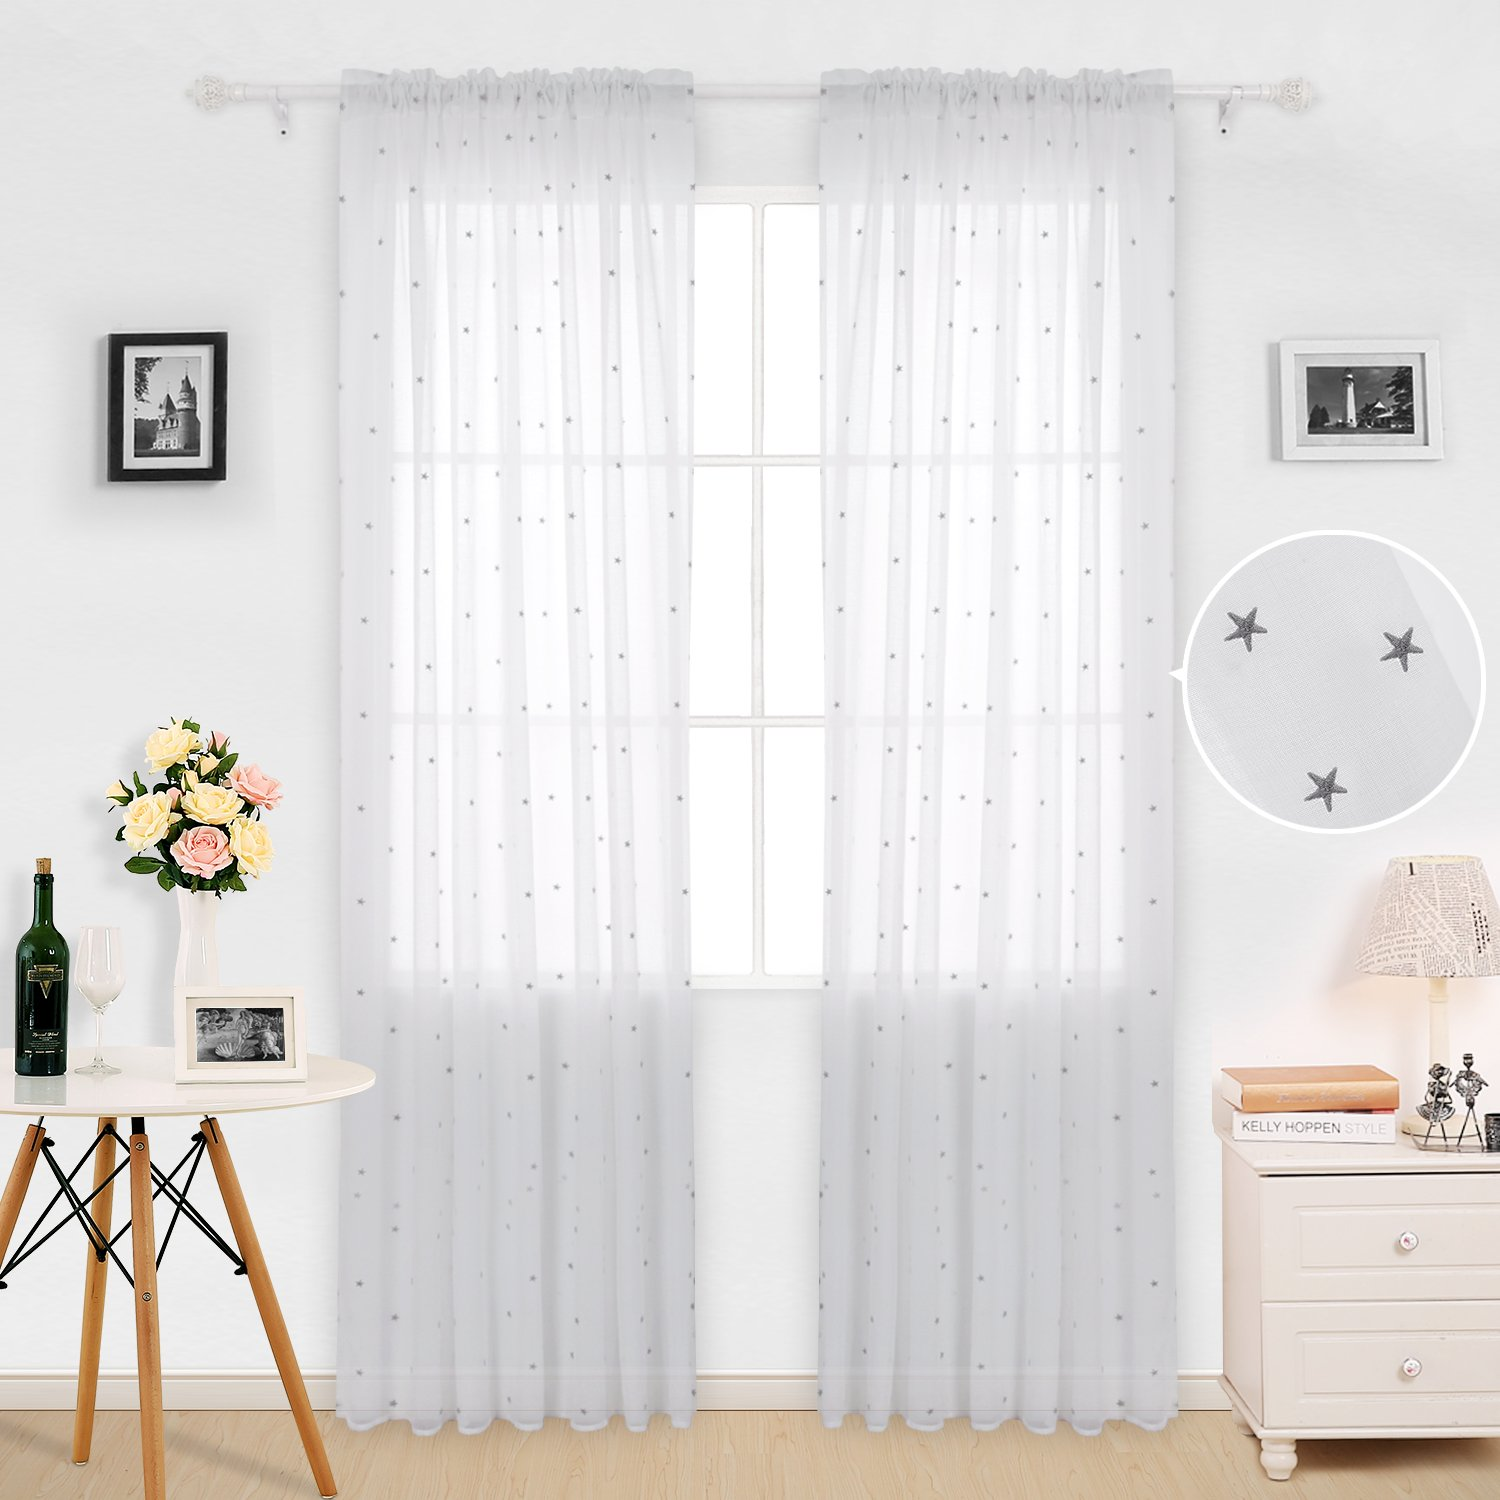 Cheap Curtains 36 Length Find Curtains 36 Length Deals On Line At